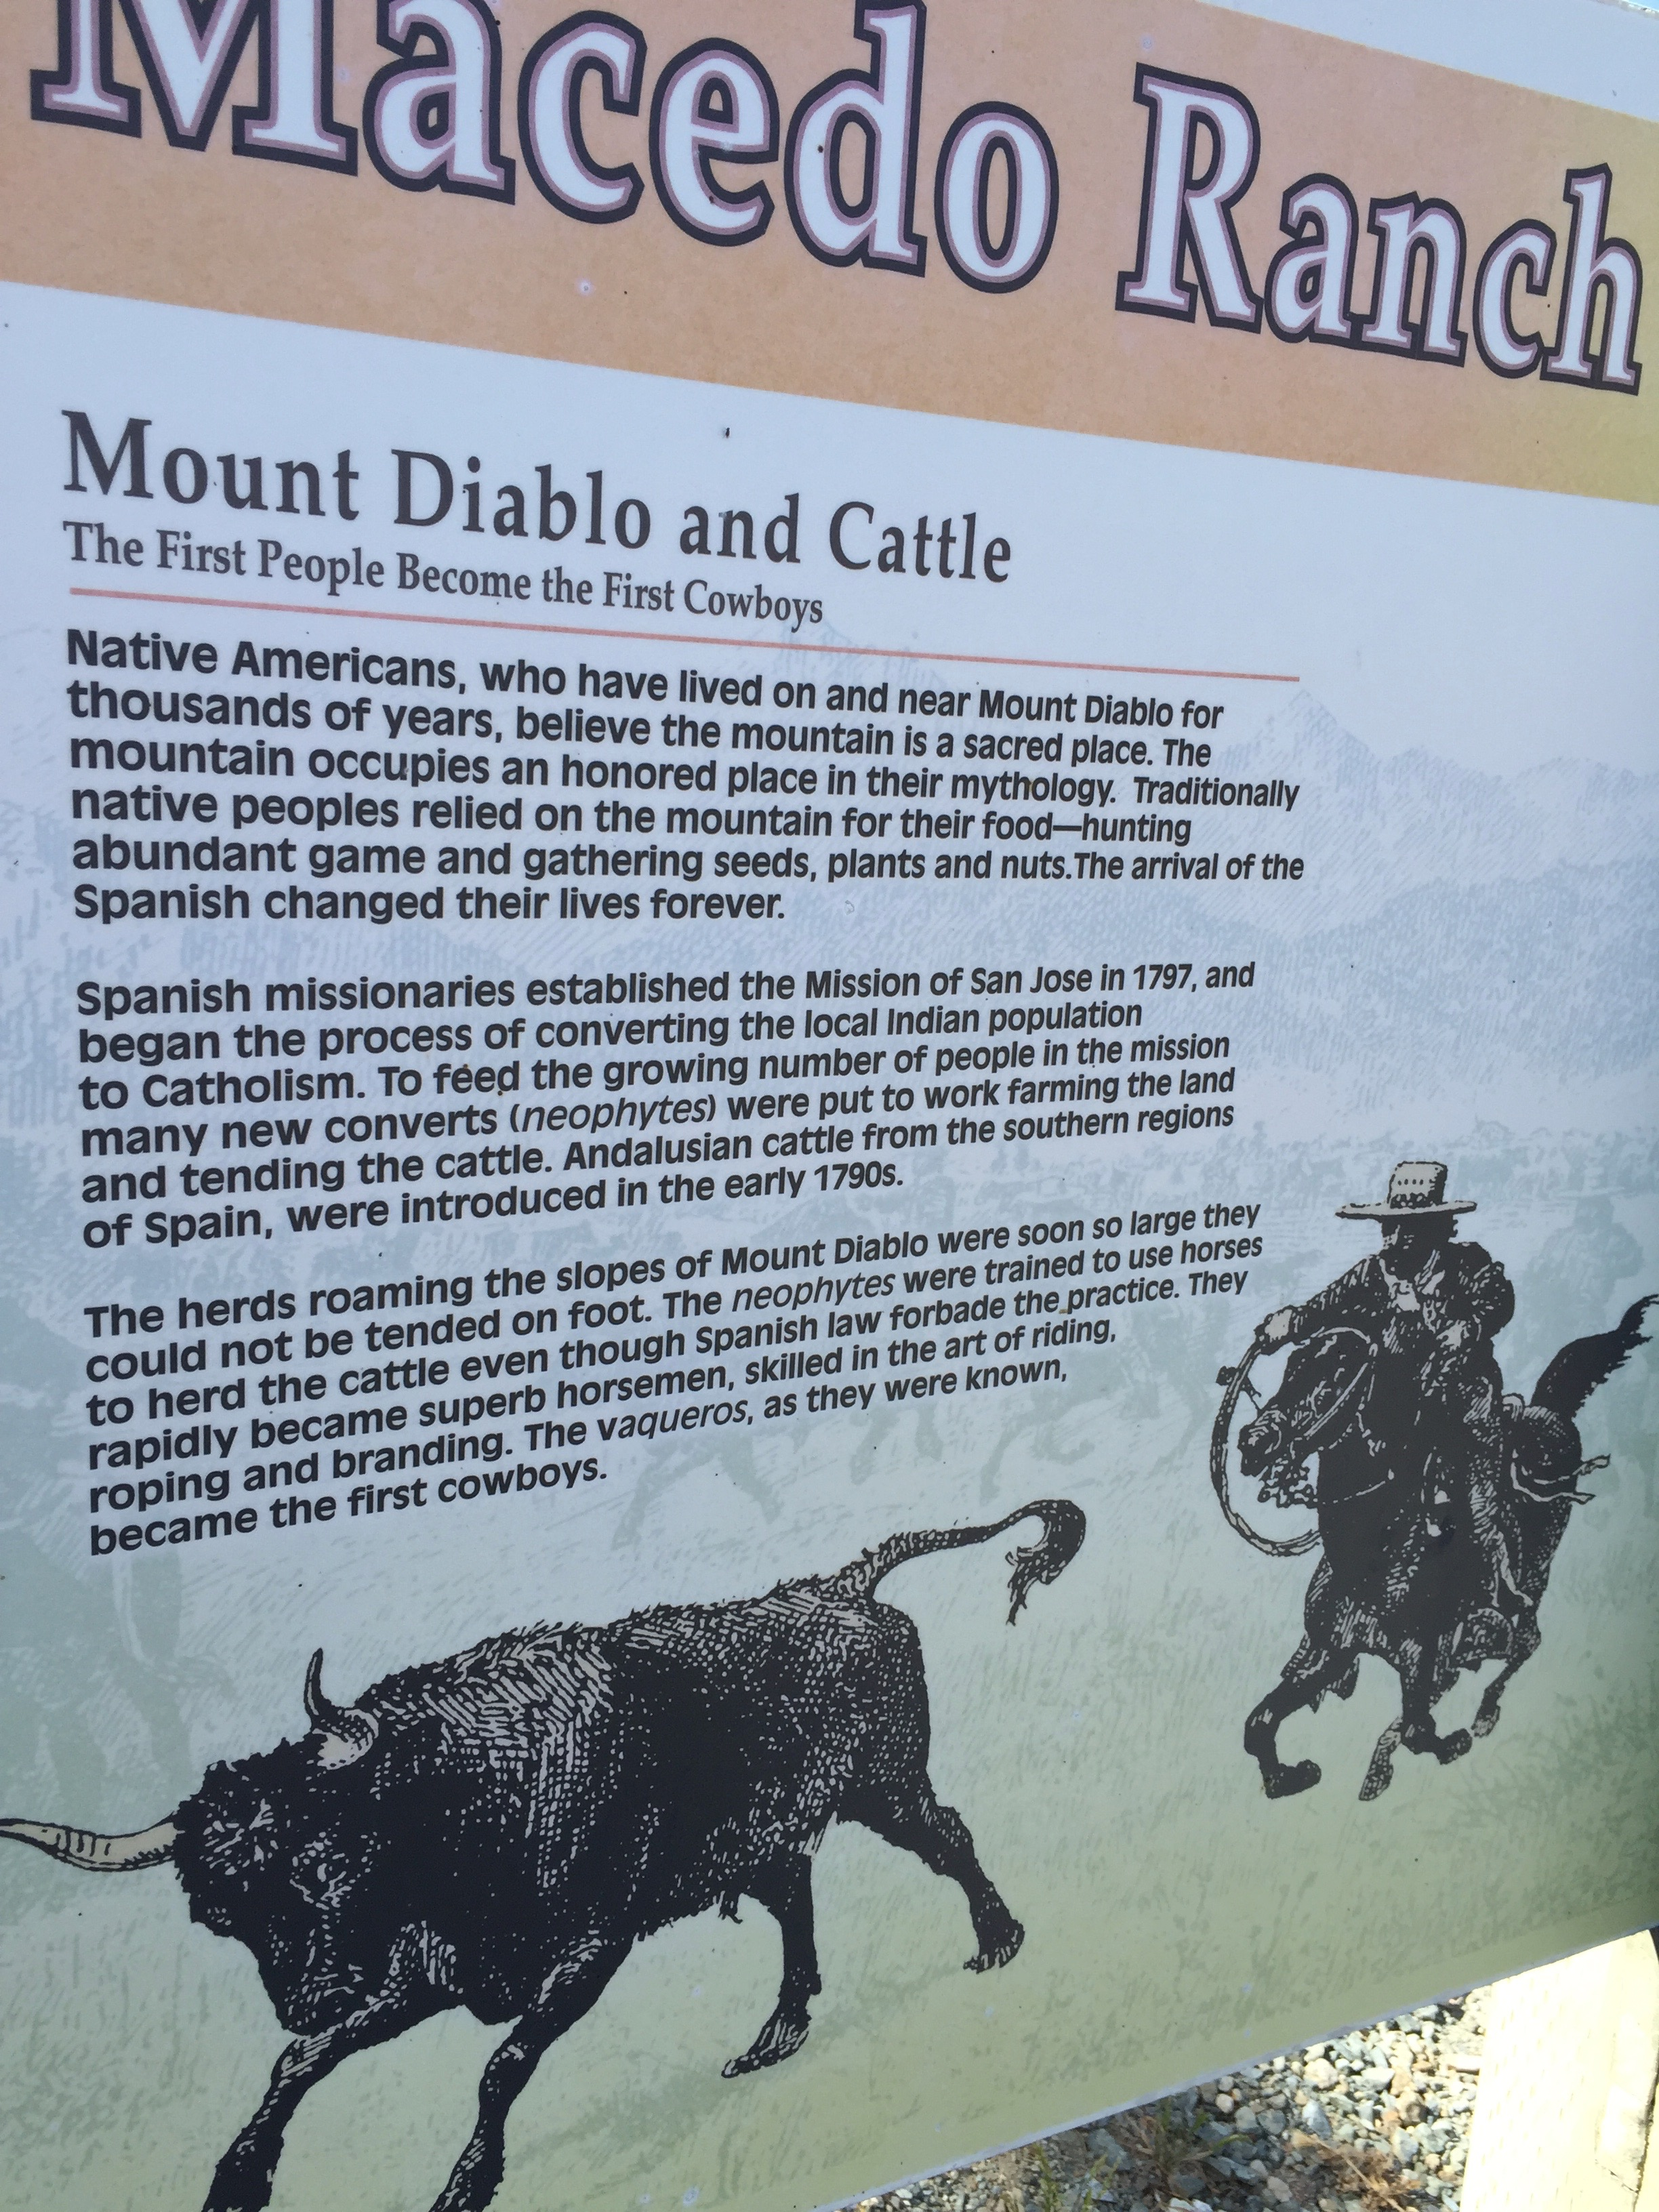 A sign at the trailhead